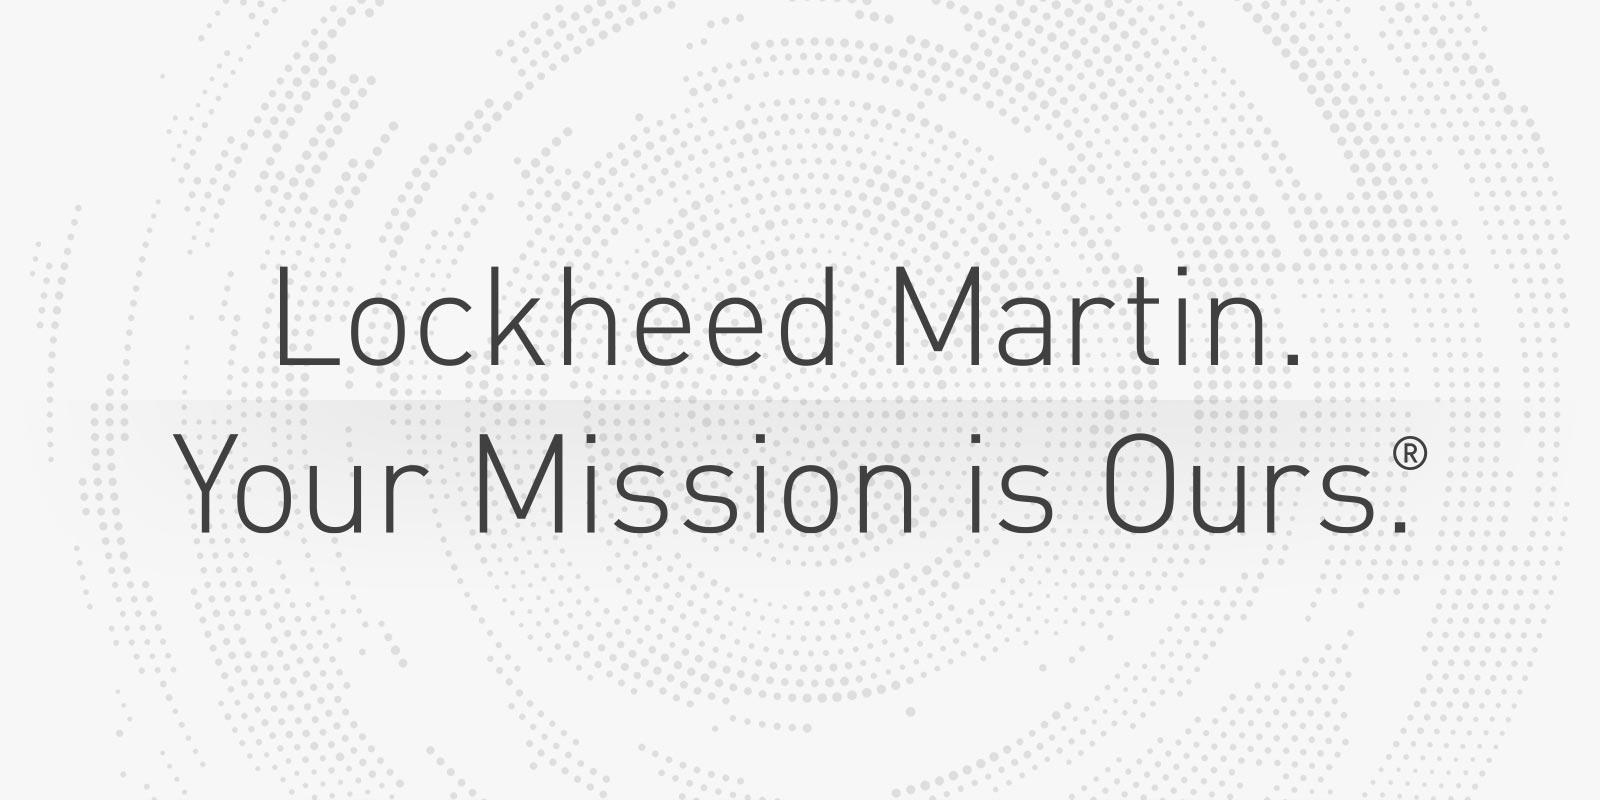 Rf Engineering Jobs In Boulder At Lockheed Martin Corporation